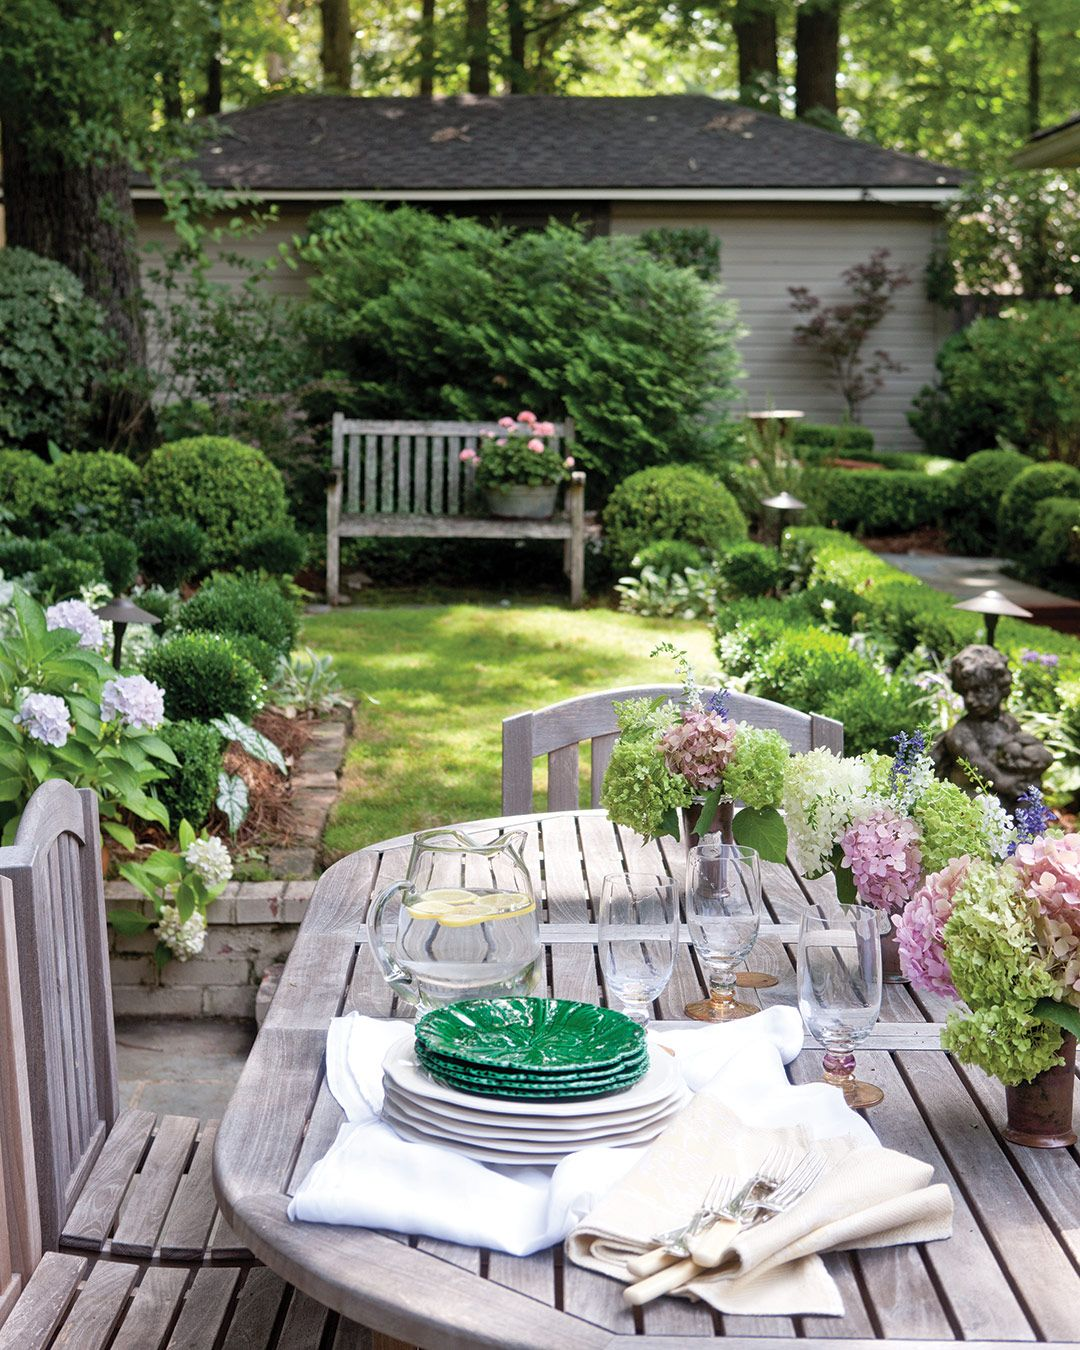 It S The Season For Garden Parties And We Can T Get Enough Outdoor Dining Small Cottage Garden Ideas Small Patio Garden Small Gardens